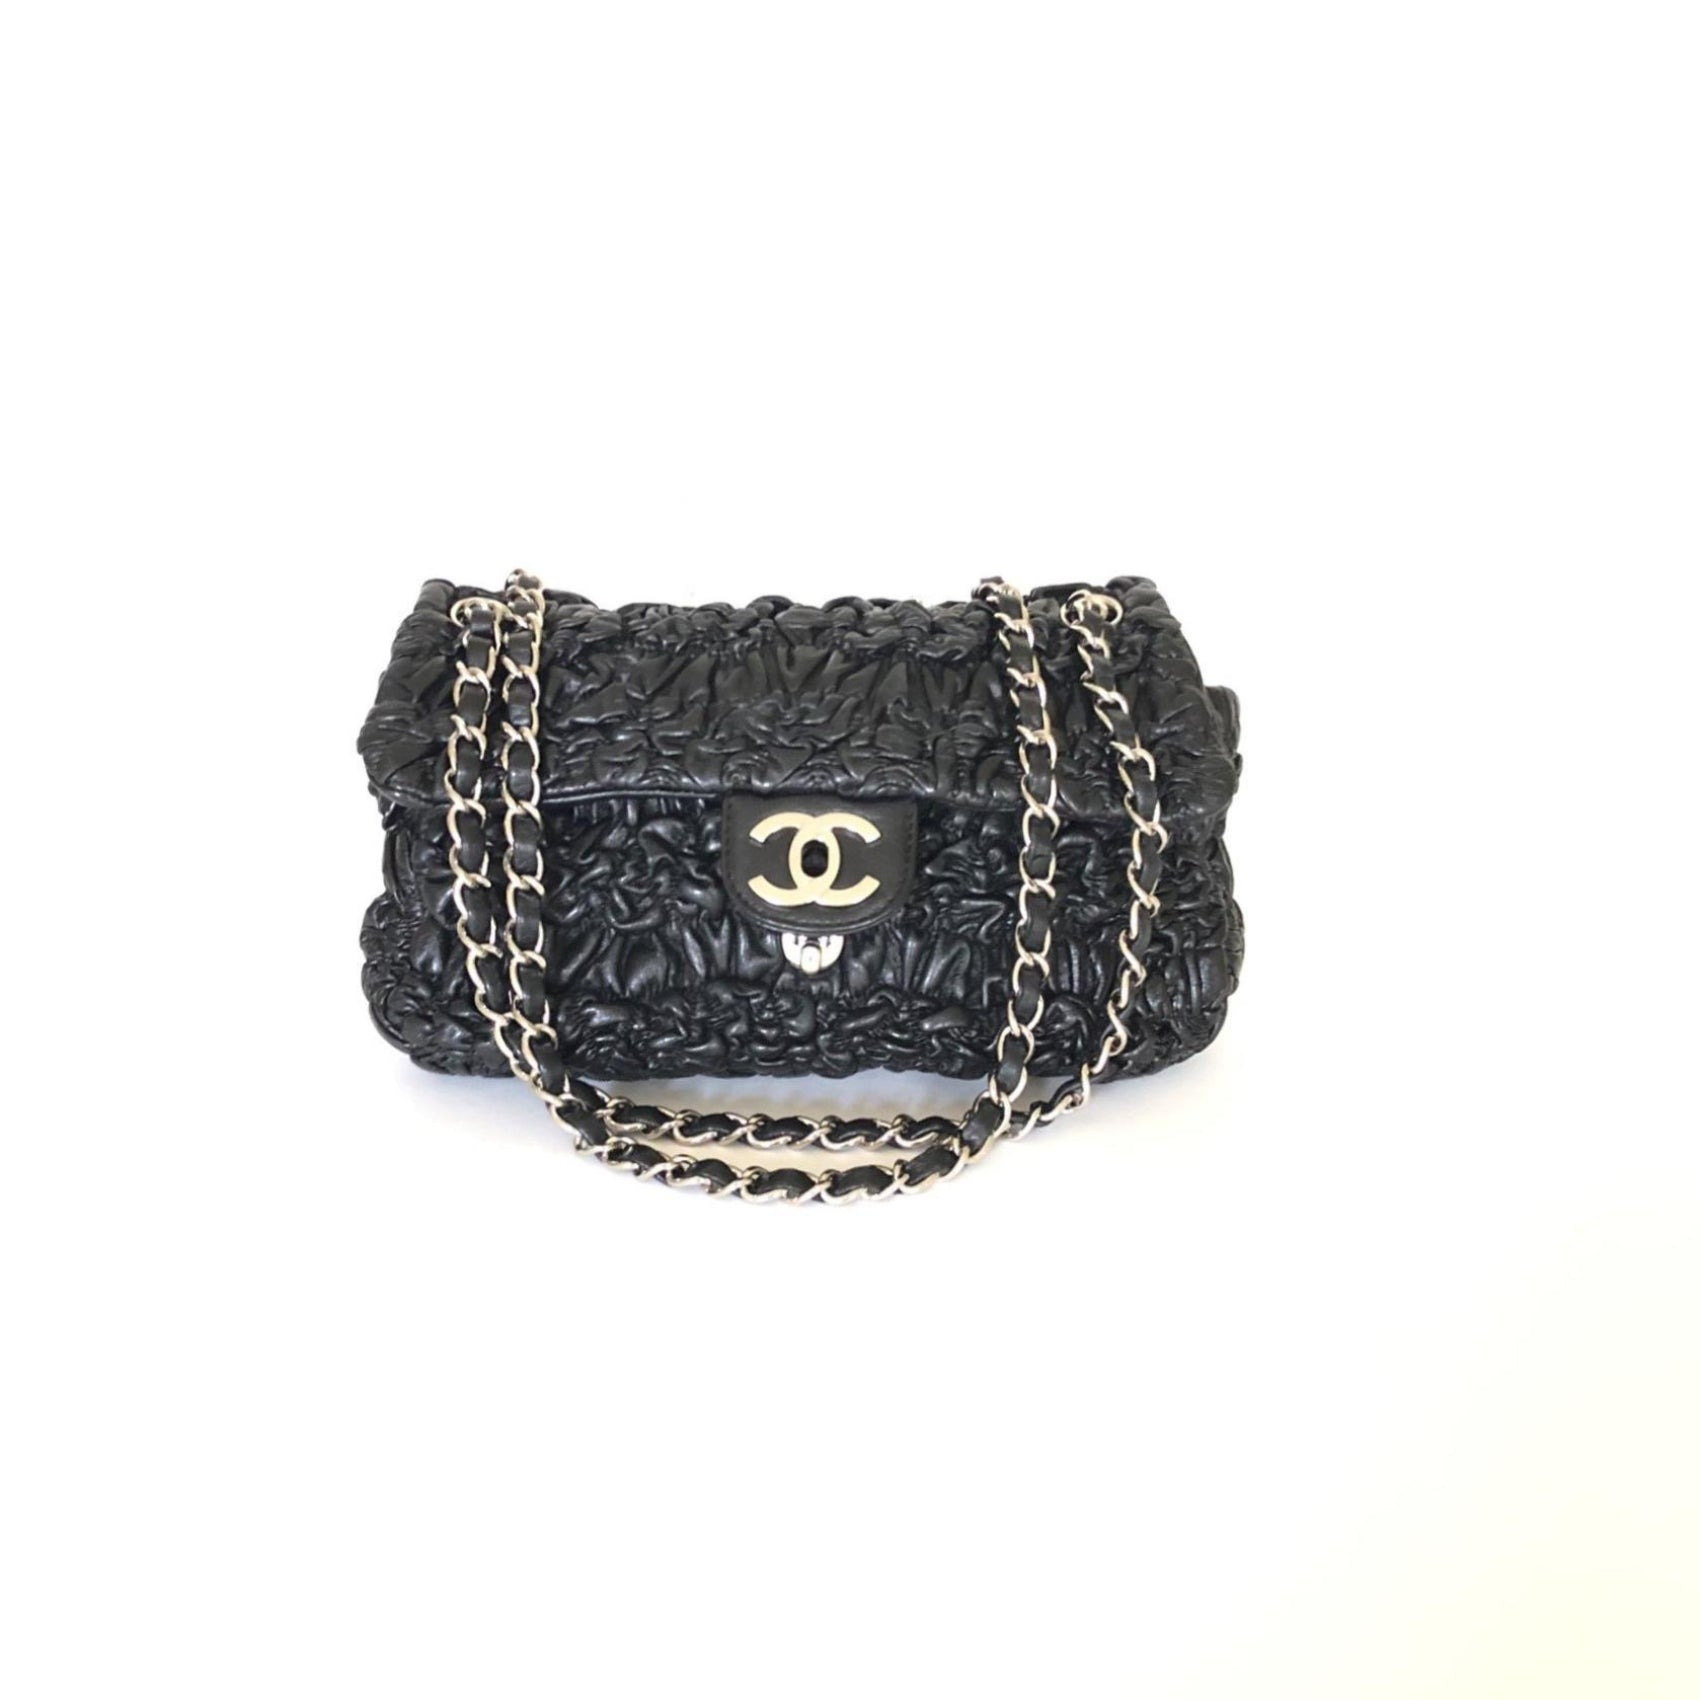 Chanel Astrakhan Lambskin Flap Bag